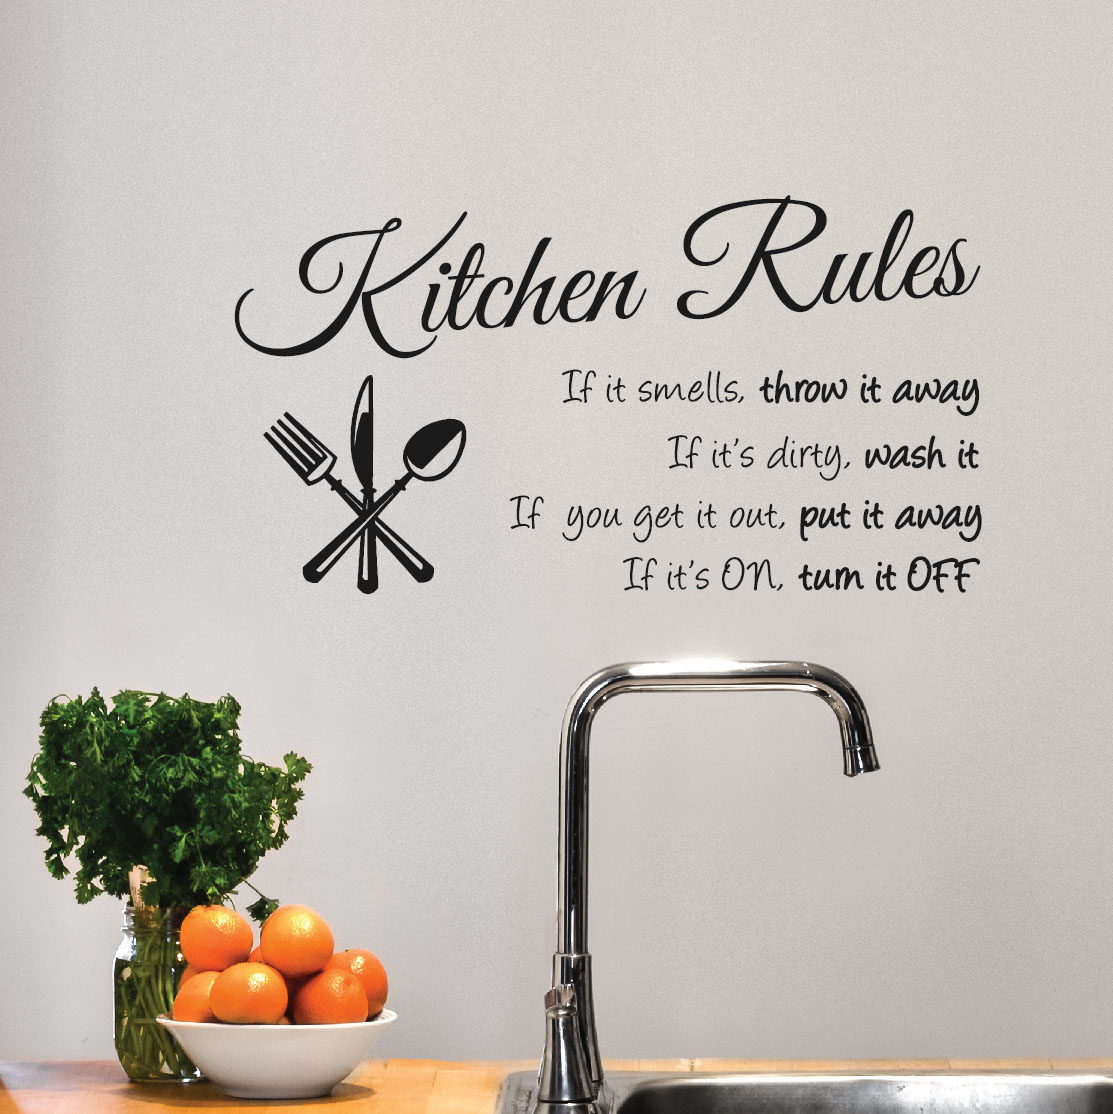 1364-kitchen-rules-wall-decal.jpg